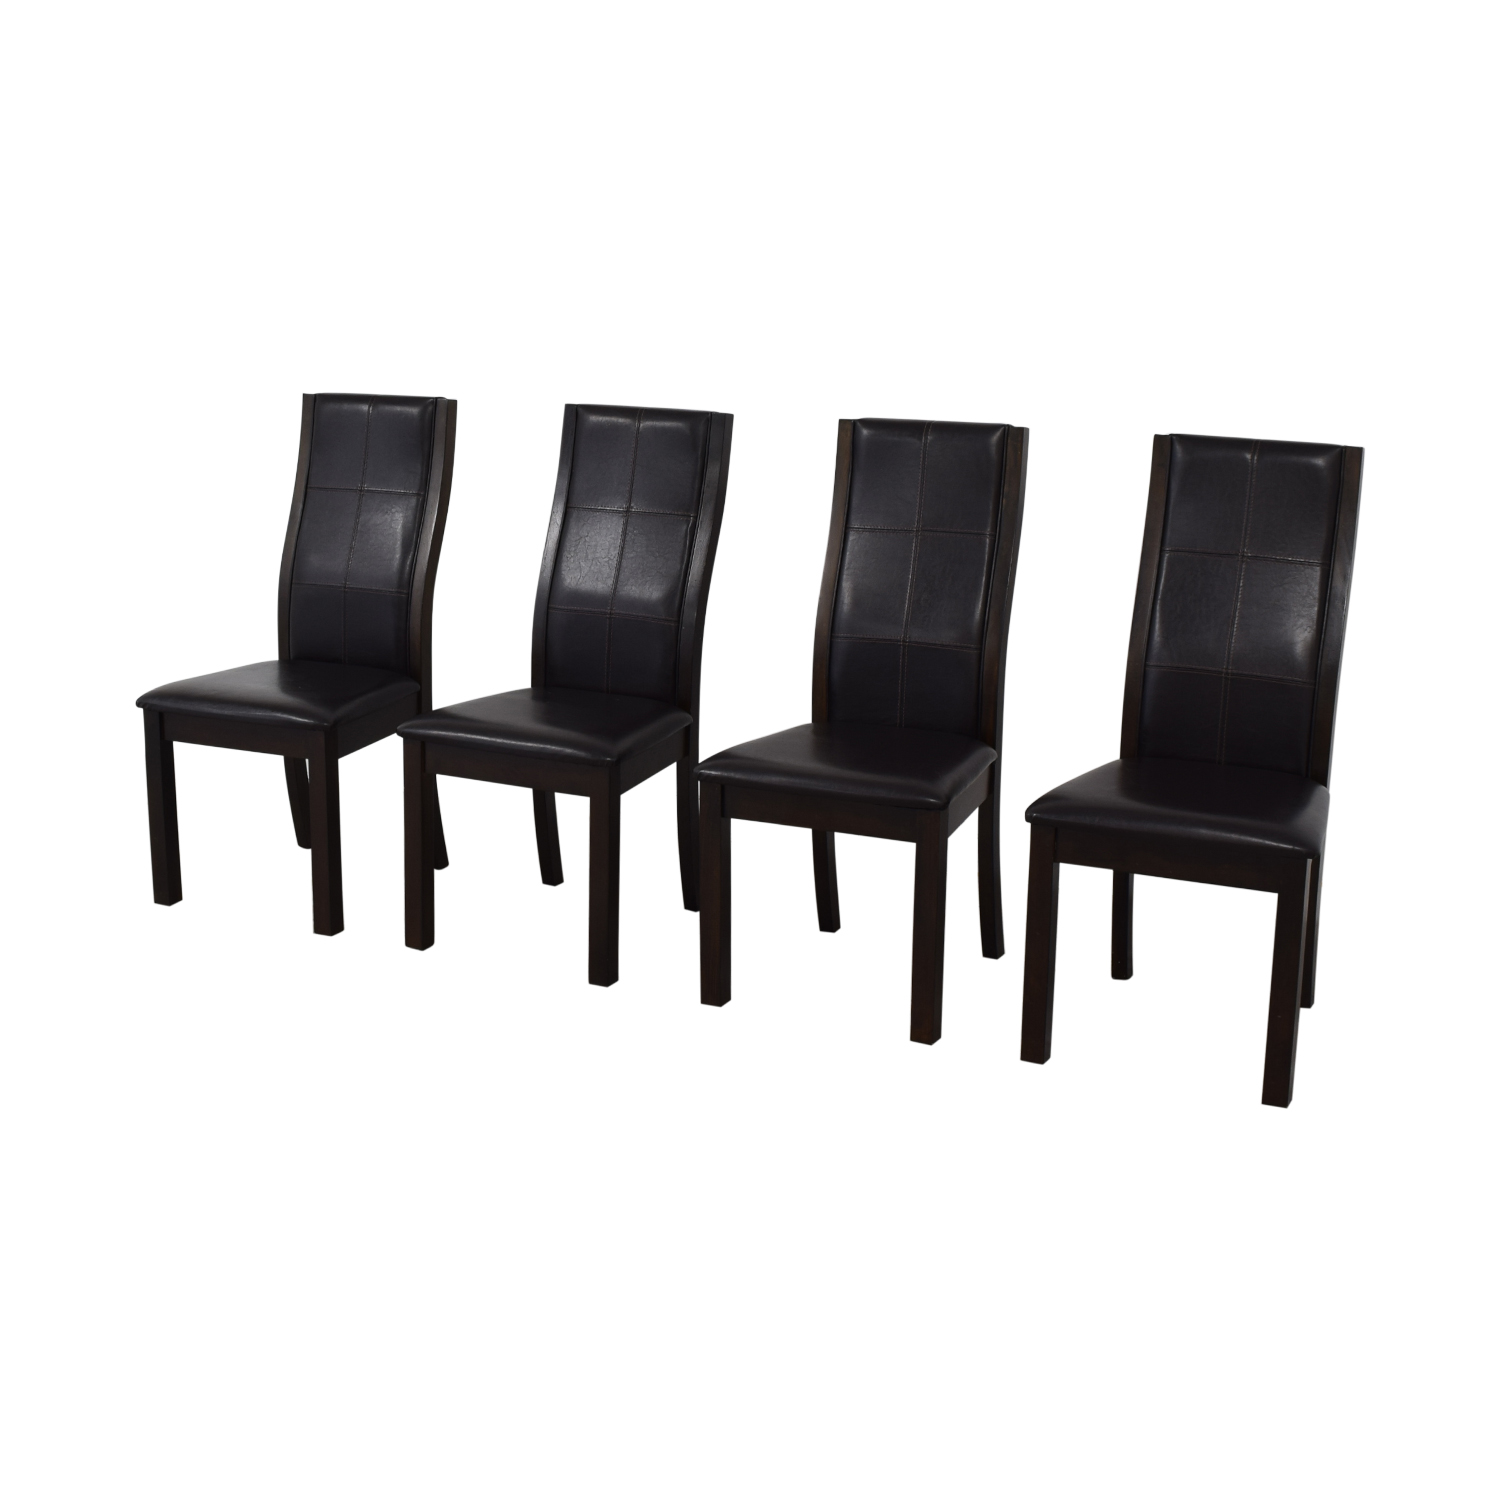 Raymour & Flanigan Brown Dining Chairs Raymour & Flanigan